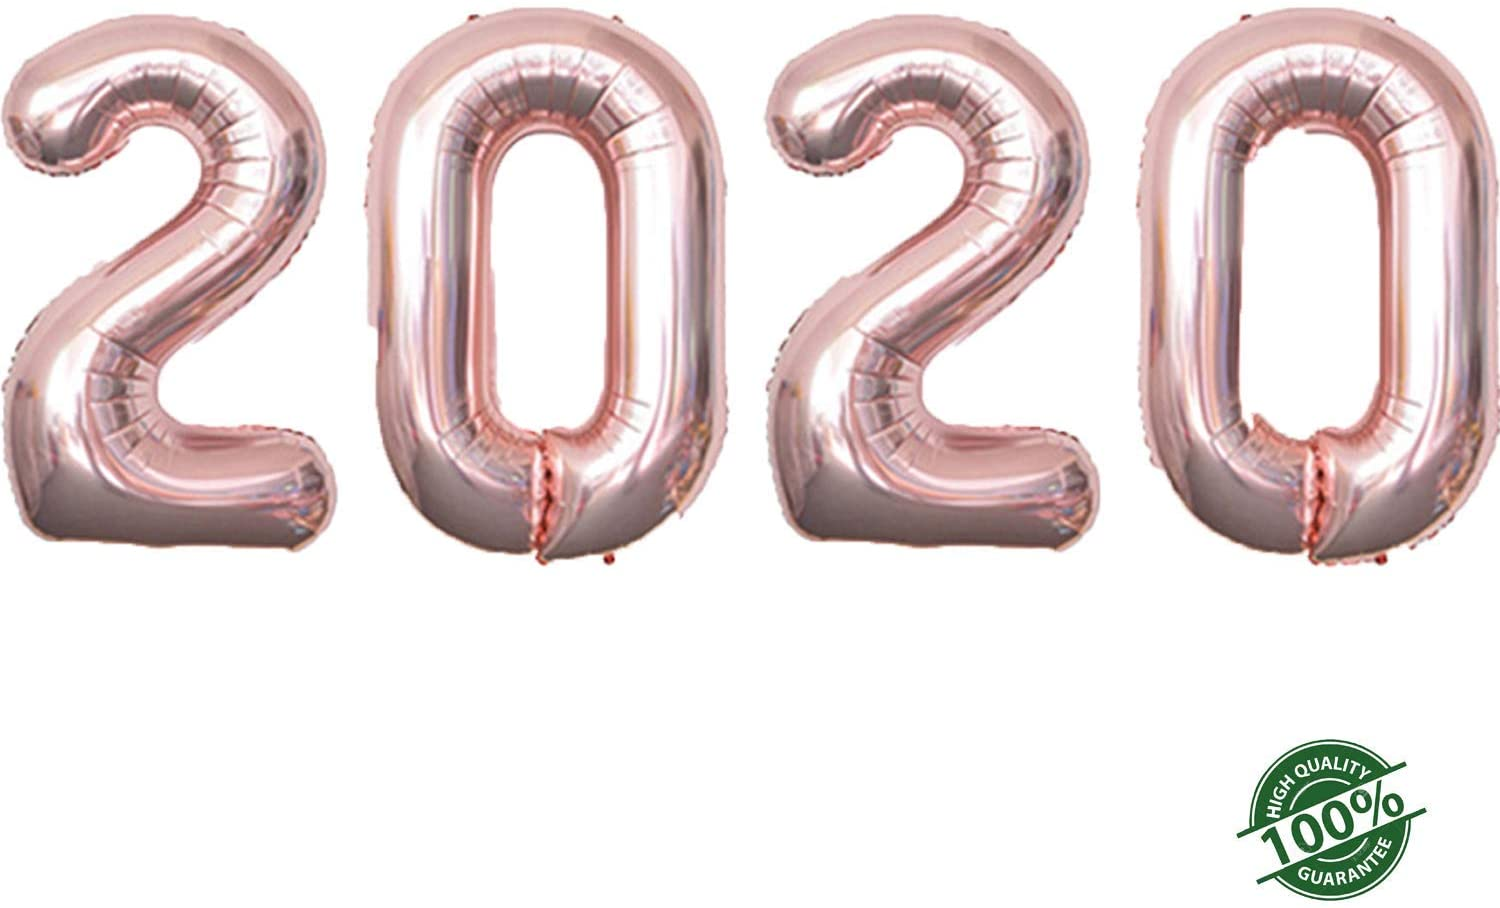 2020 Happy New Year Balloons | 42-inch Rose Gold 2020 Number Foil Large Balloons | Perfect for New Year's Party/Events as Balloon Decorations (Rose Gold)